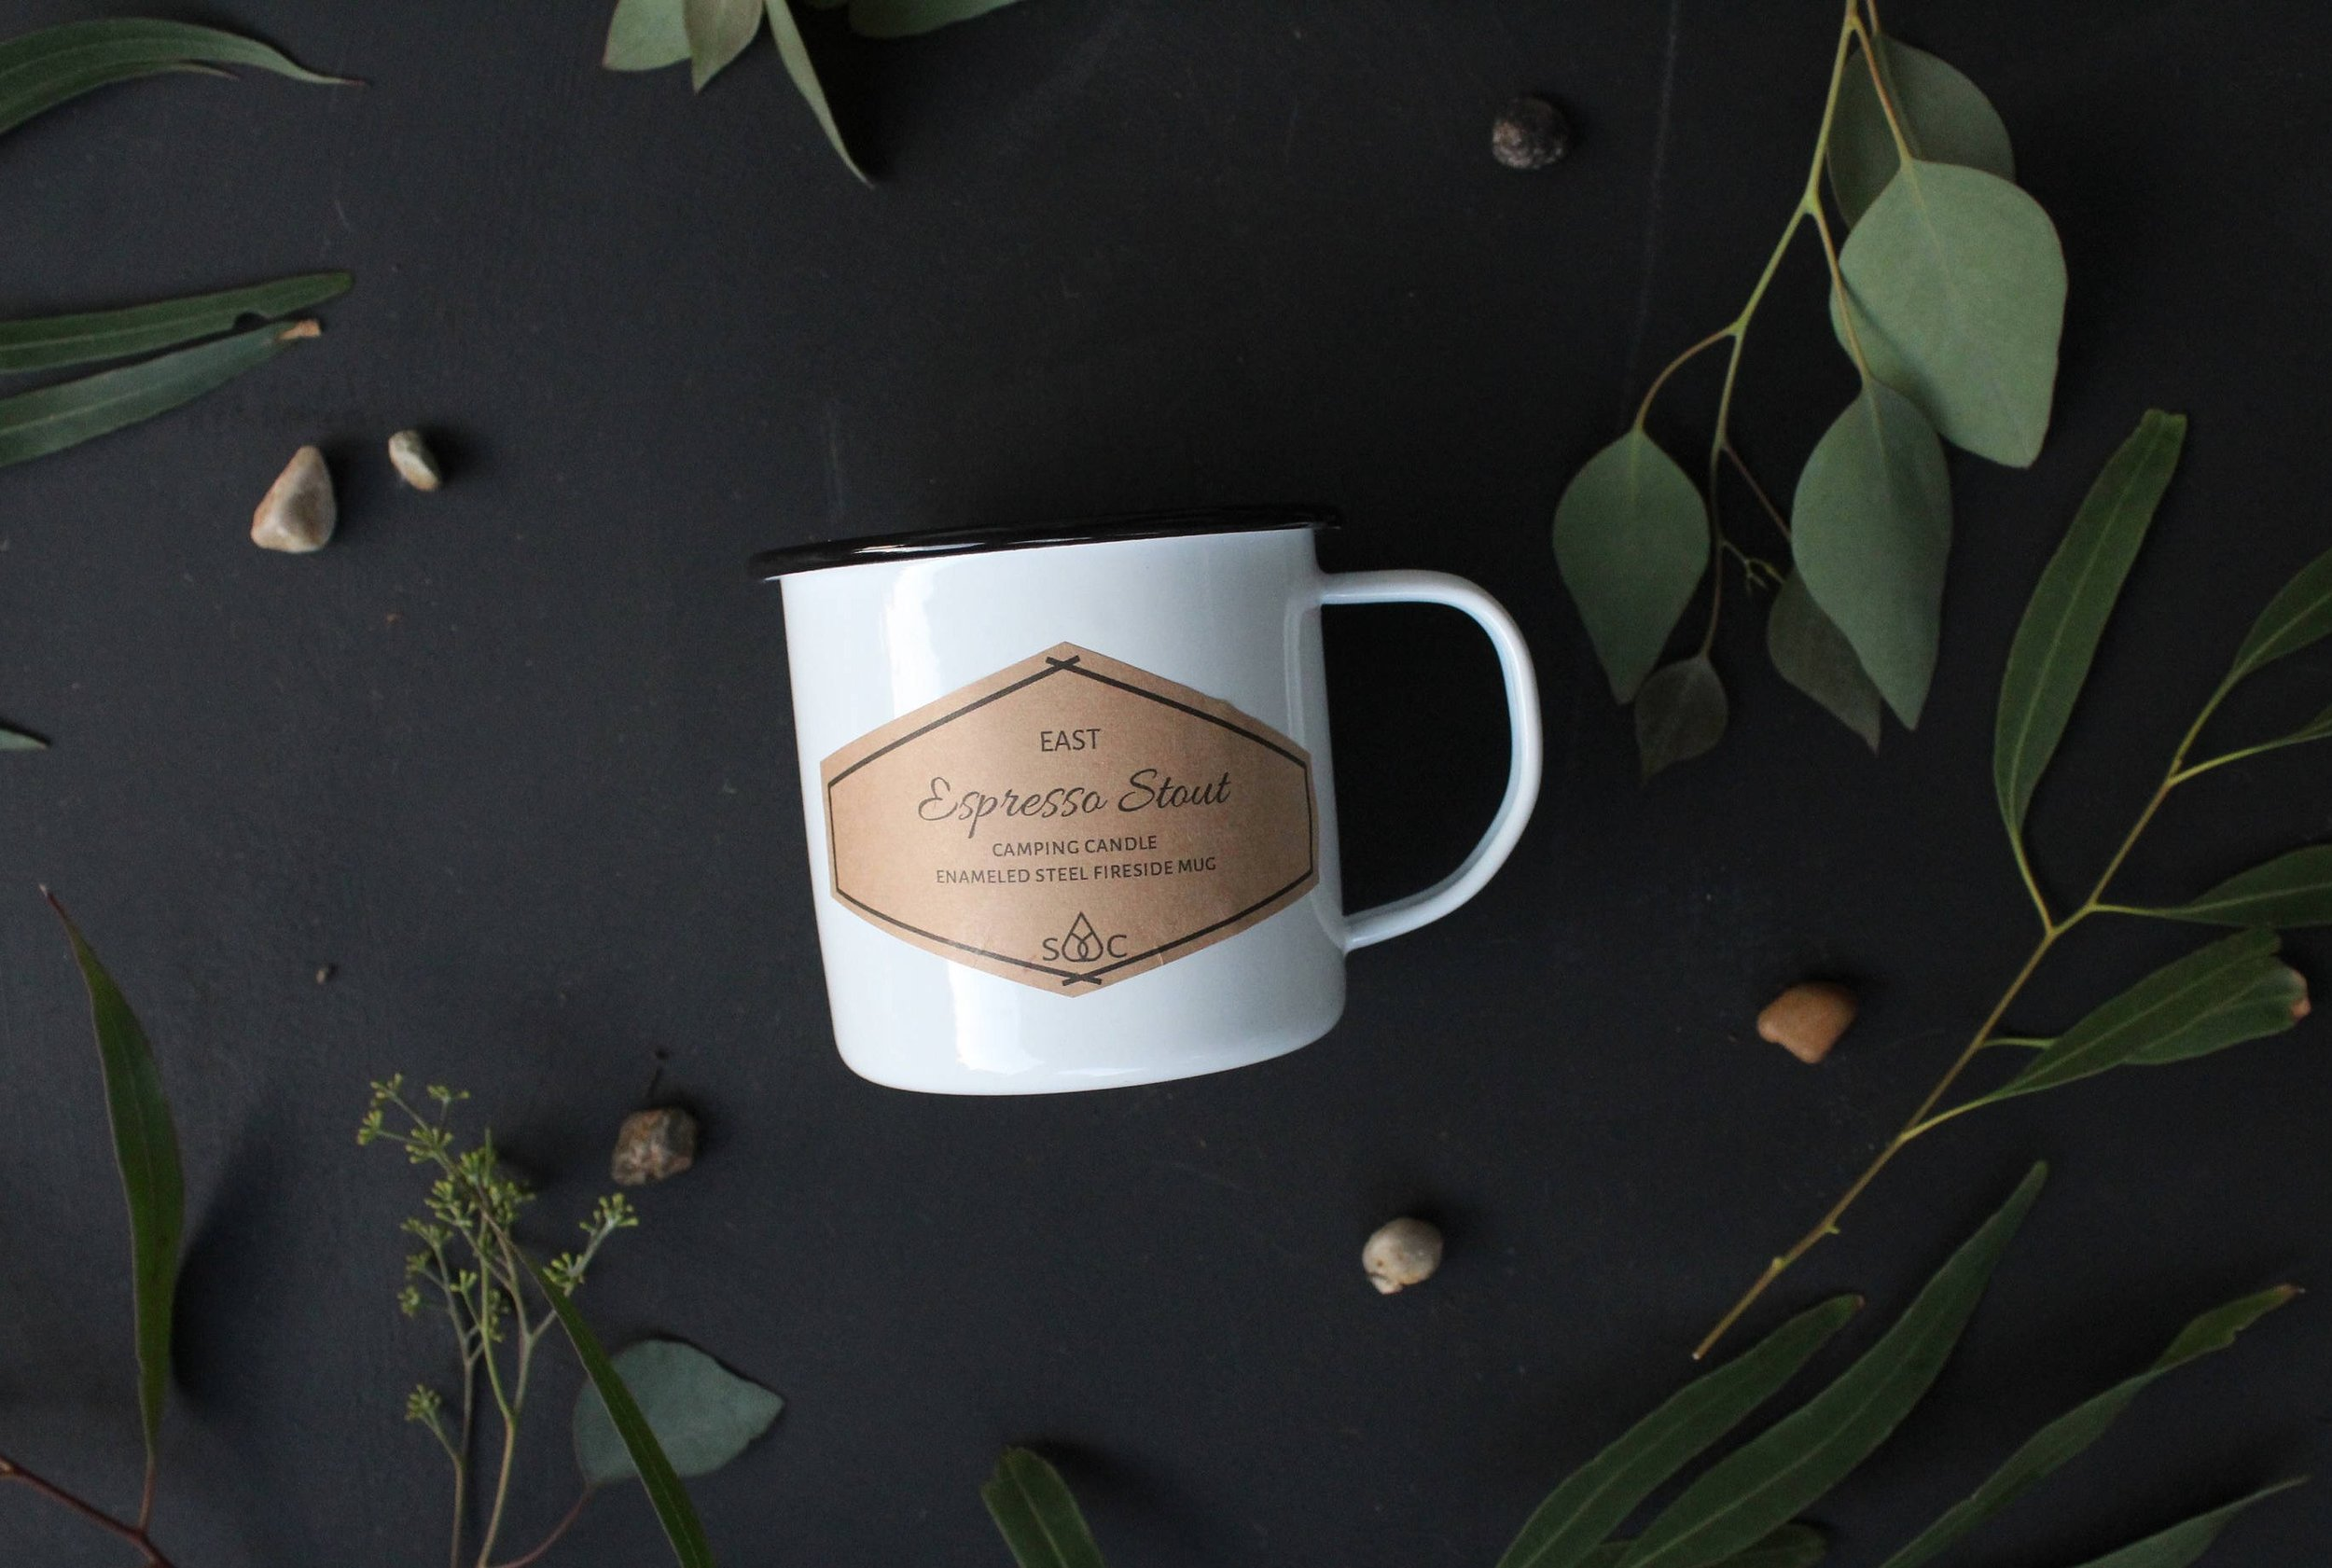 Espresso Stout enamelware mug soy candle by Sweet Dish & Darling